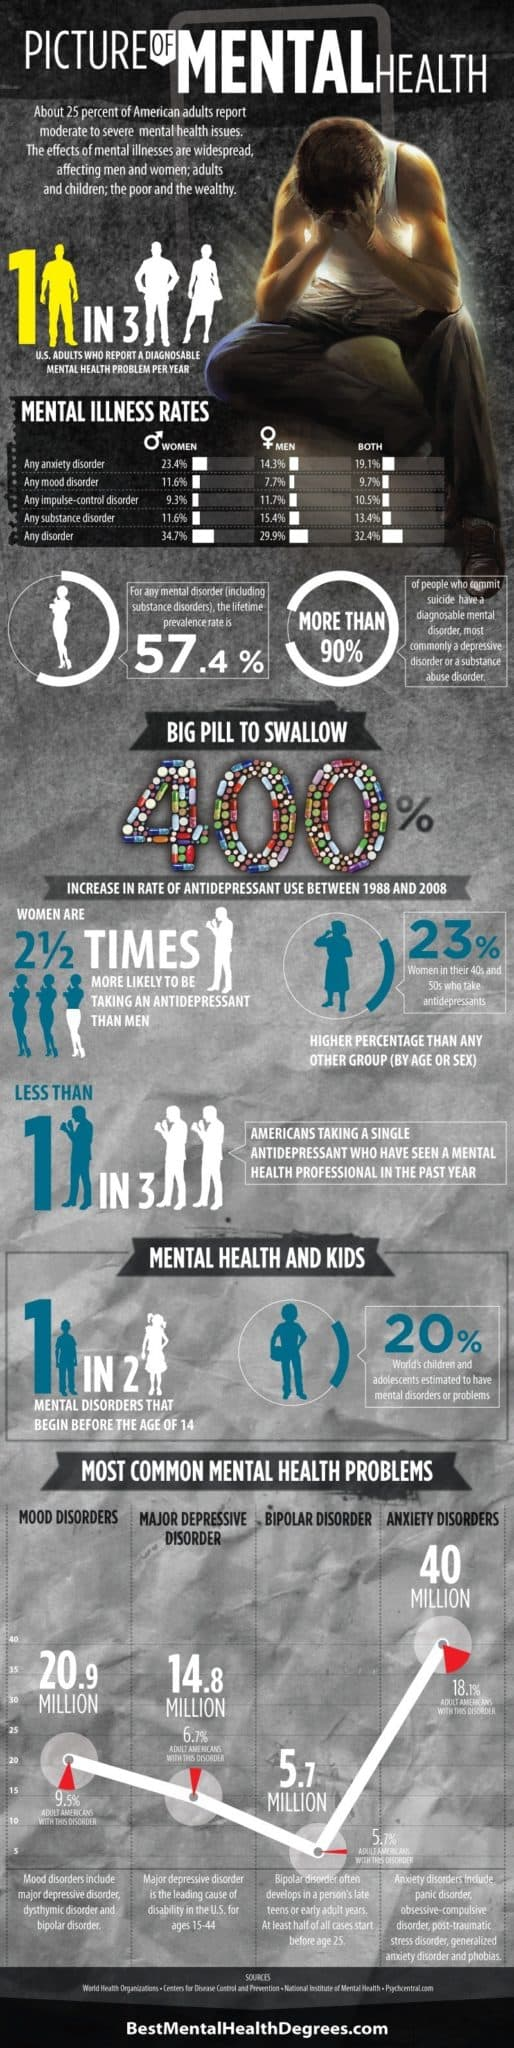 mental illness mental health infographic